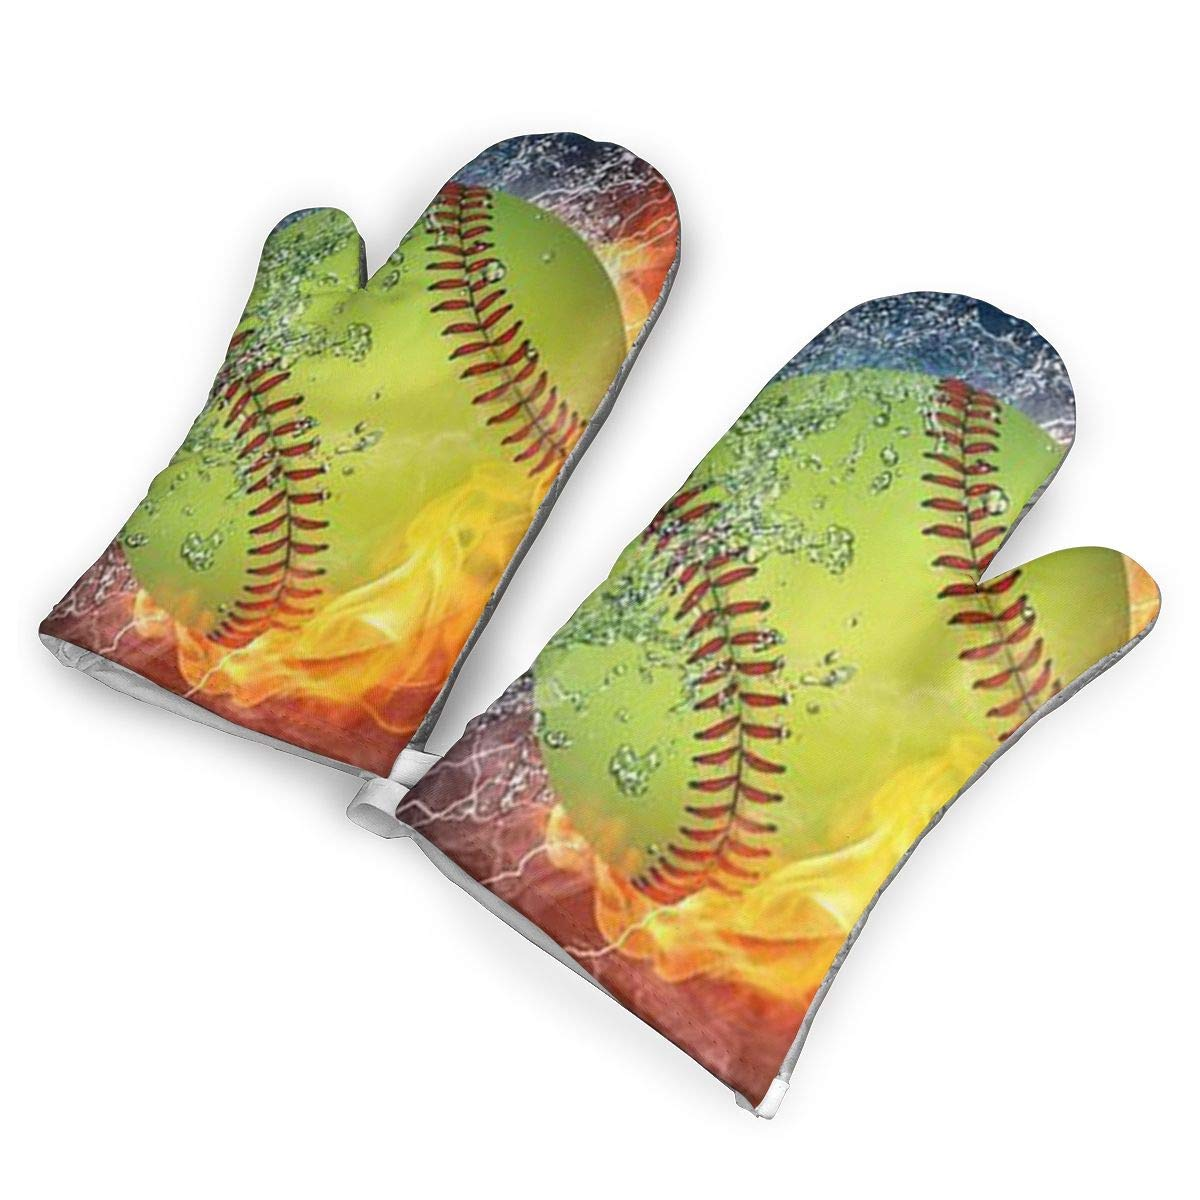 VANKINE Softball World Series Oven Mitts Cooking Gloves 480 F Heat Resistant, Non Slip Grip Pot Holders for Kitchen Oven BBQ Grill and Fire Pits for Cooking Baking